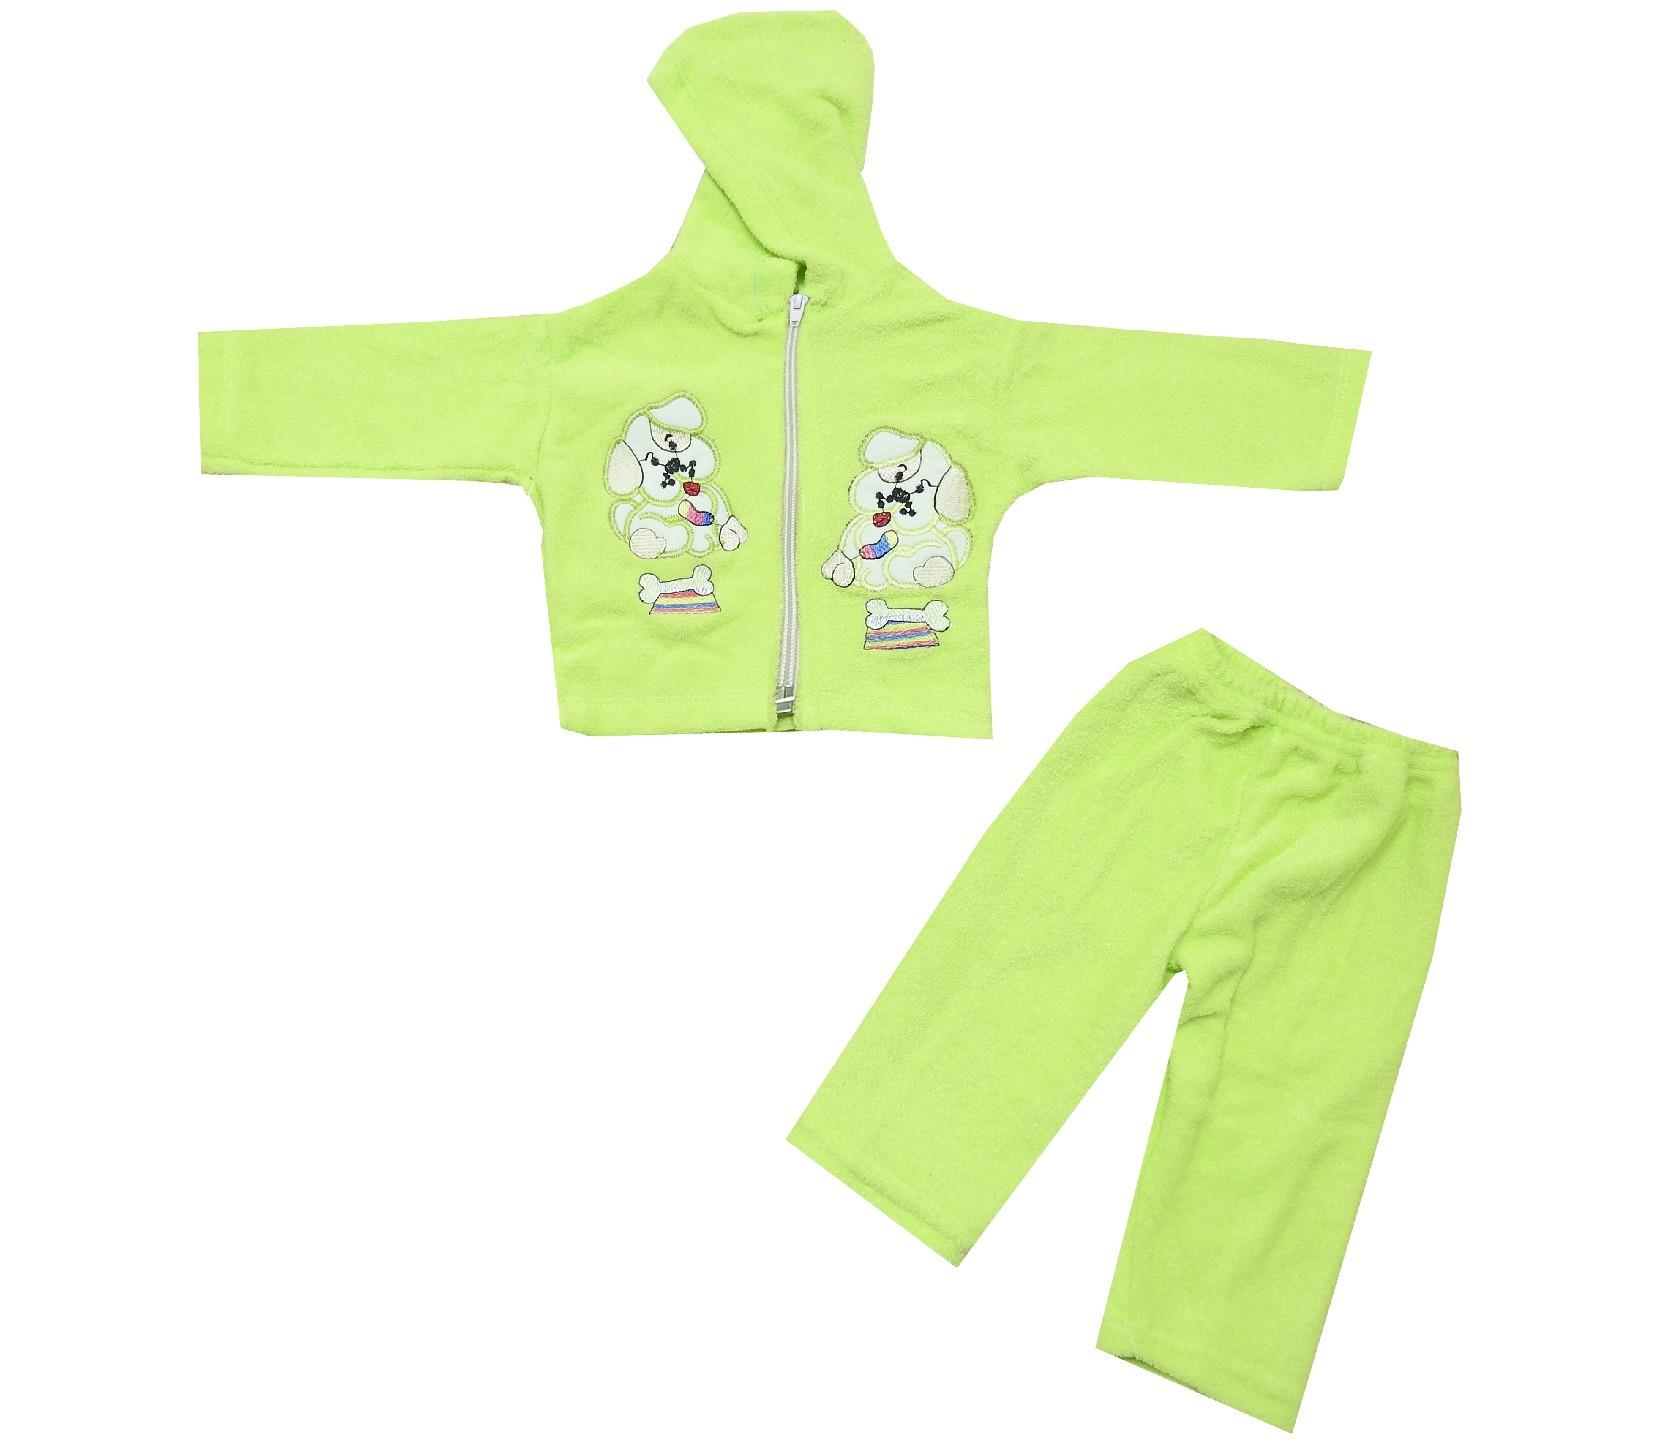 78485 wholesale printed hooded faux shearling jacket and trouser for baby (0-3 month)